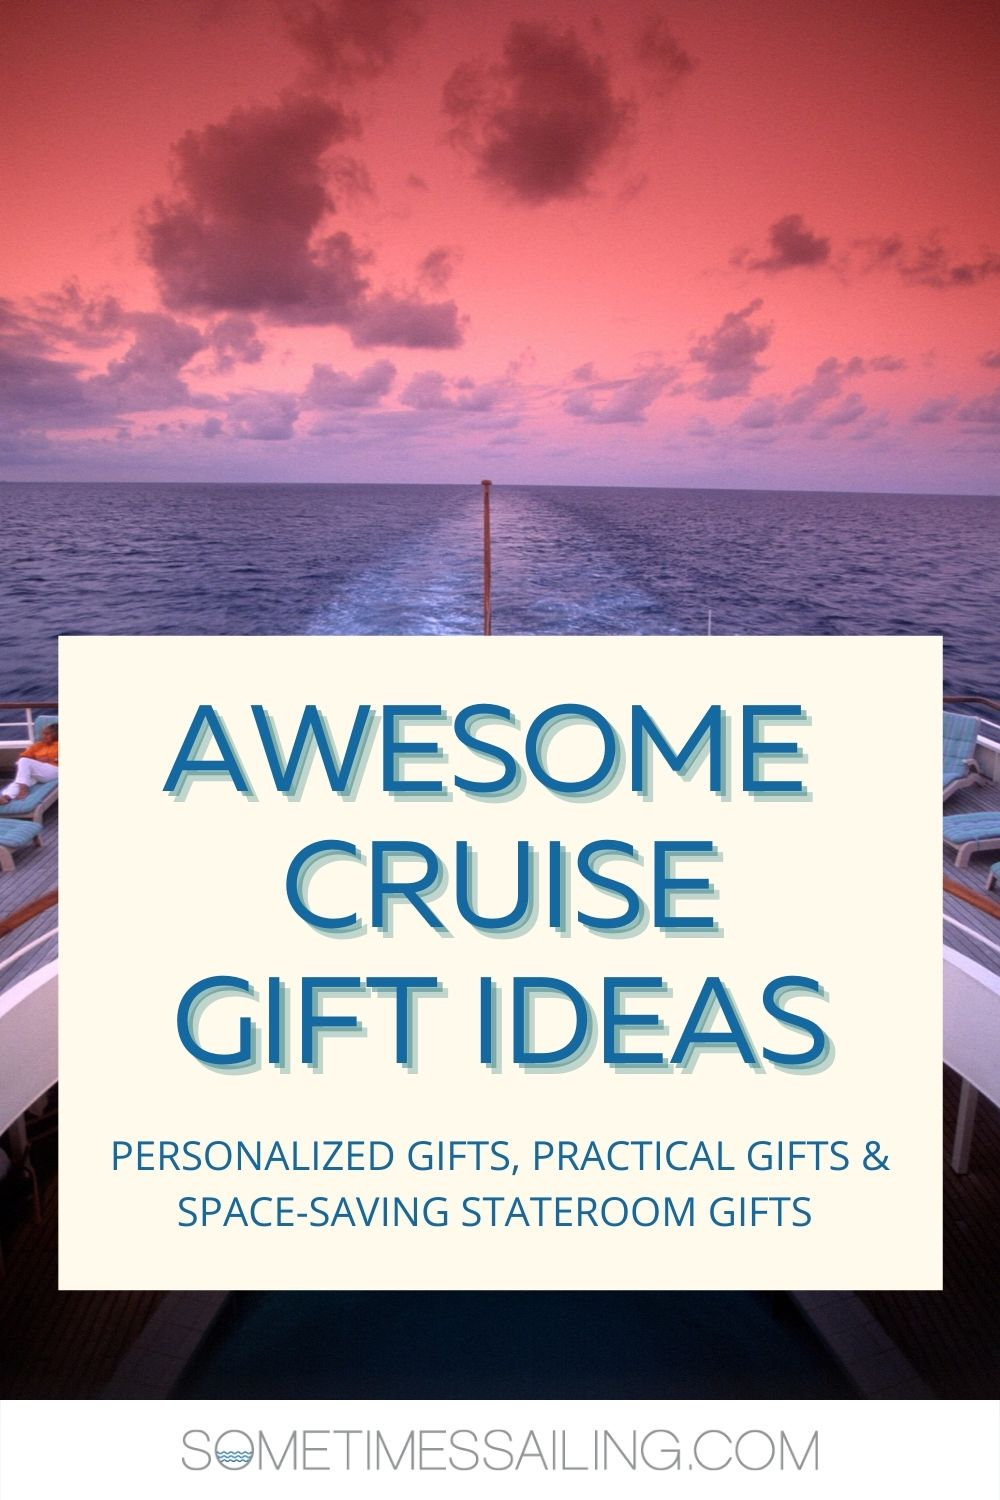 Cruise gift ideas Pinterest image with a blue block and text and photo of a pink and purple sunset above a cruise ship